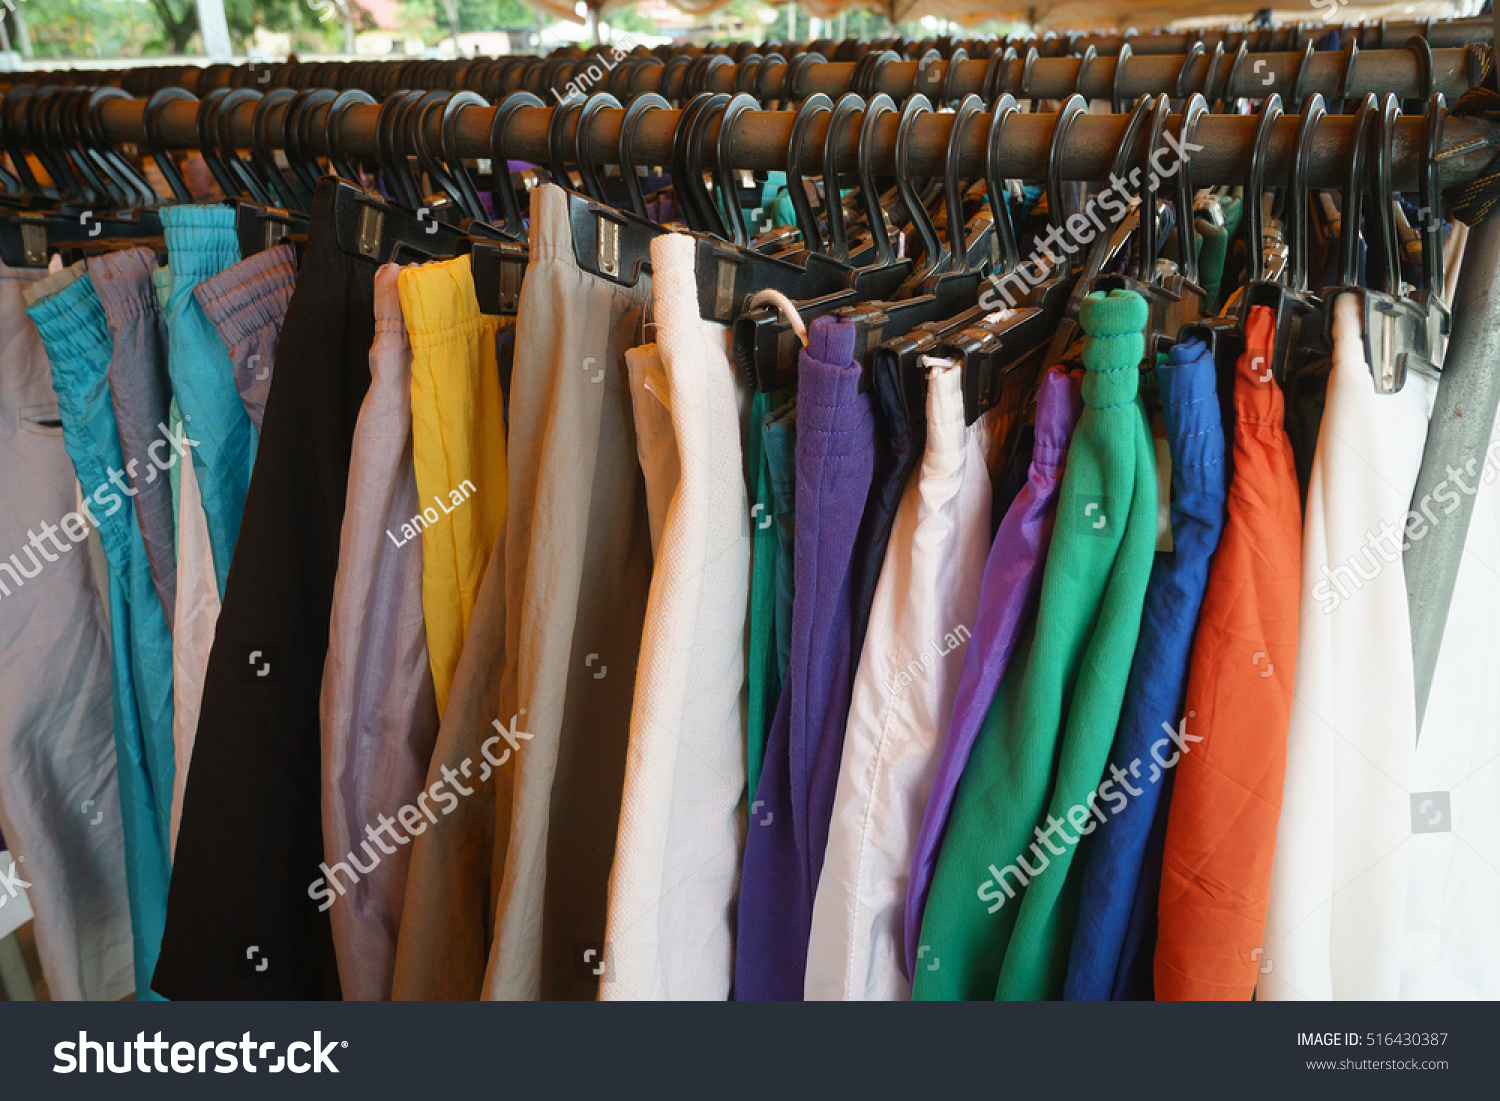 b88ad9a44f4a72 Used clothing for sale at pre loved used second hand shop.